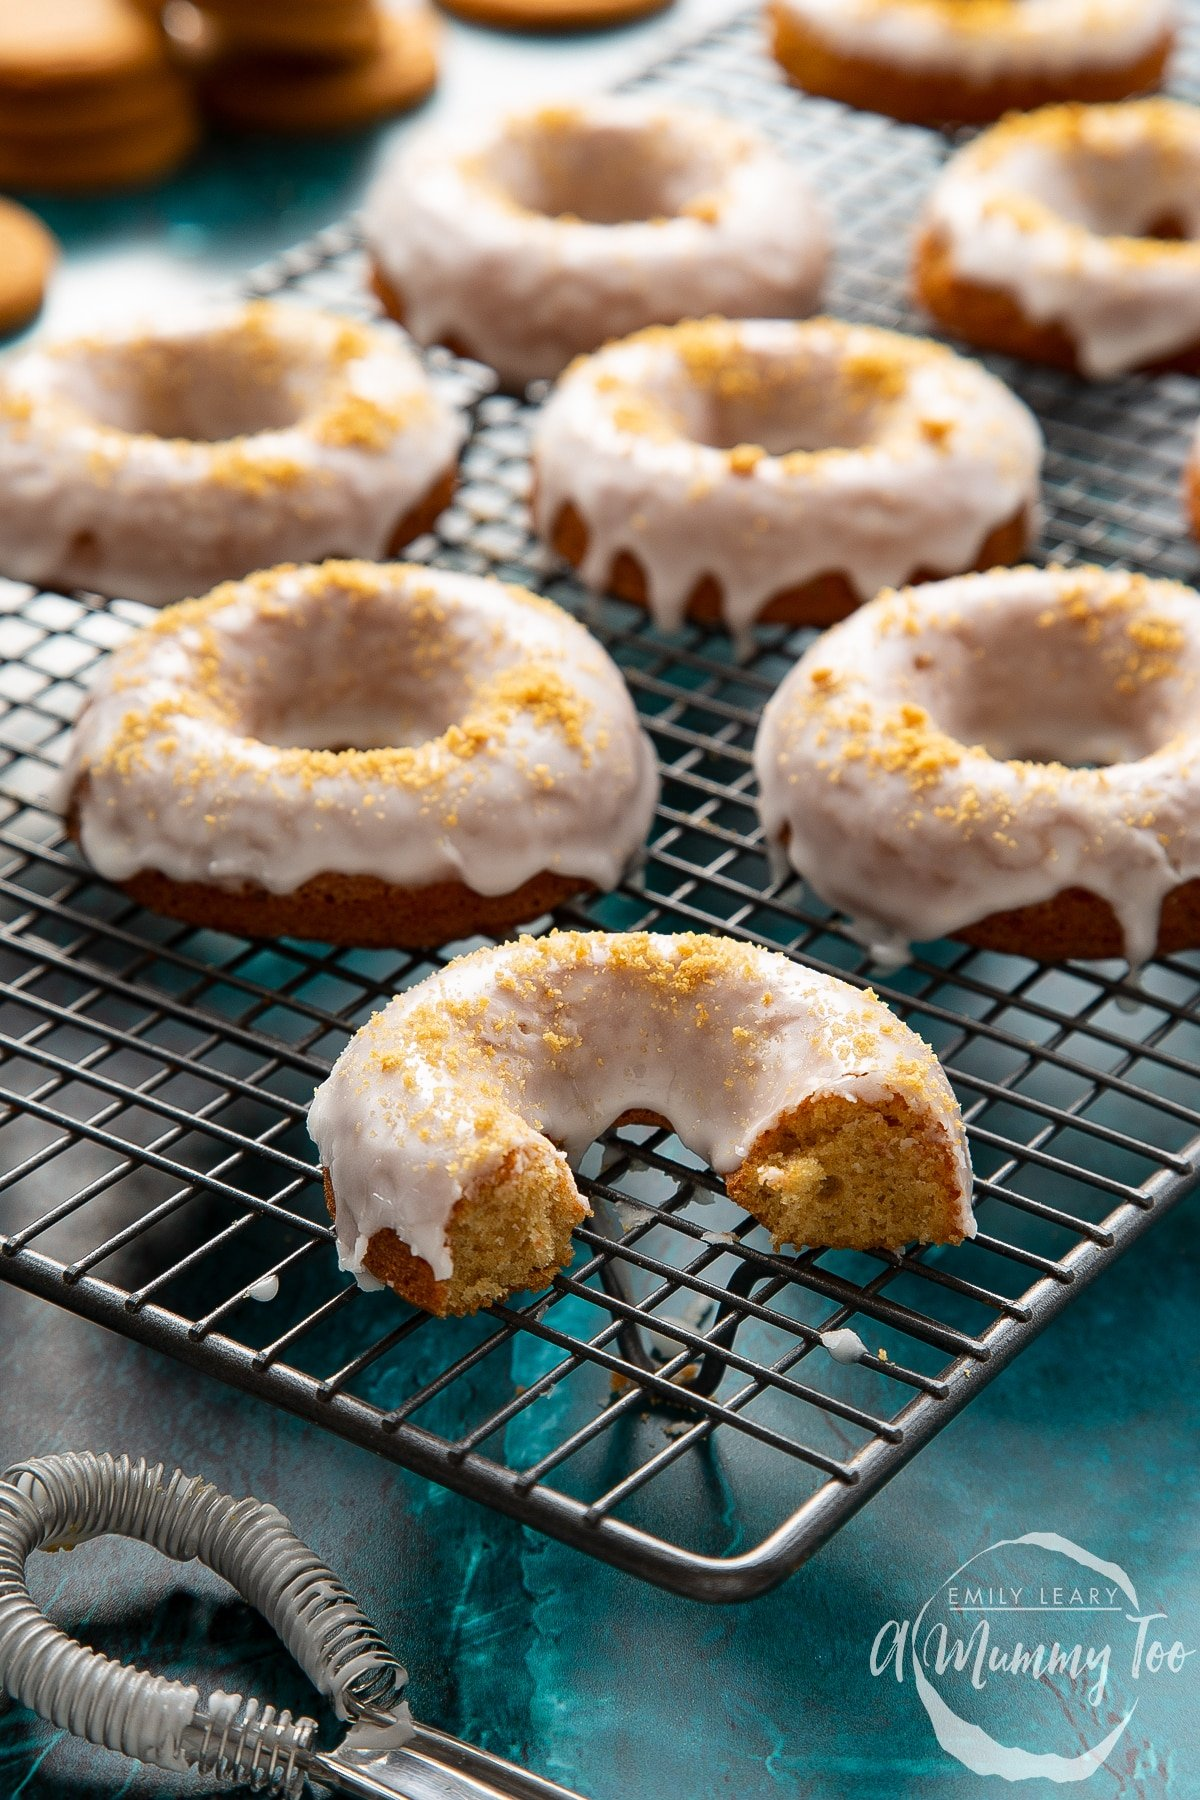 Baked gingerbread donuts with a lemon glaze on a wire cooling rack. One has been part eaten.